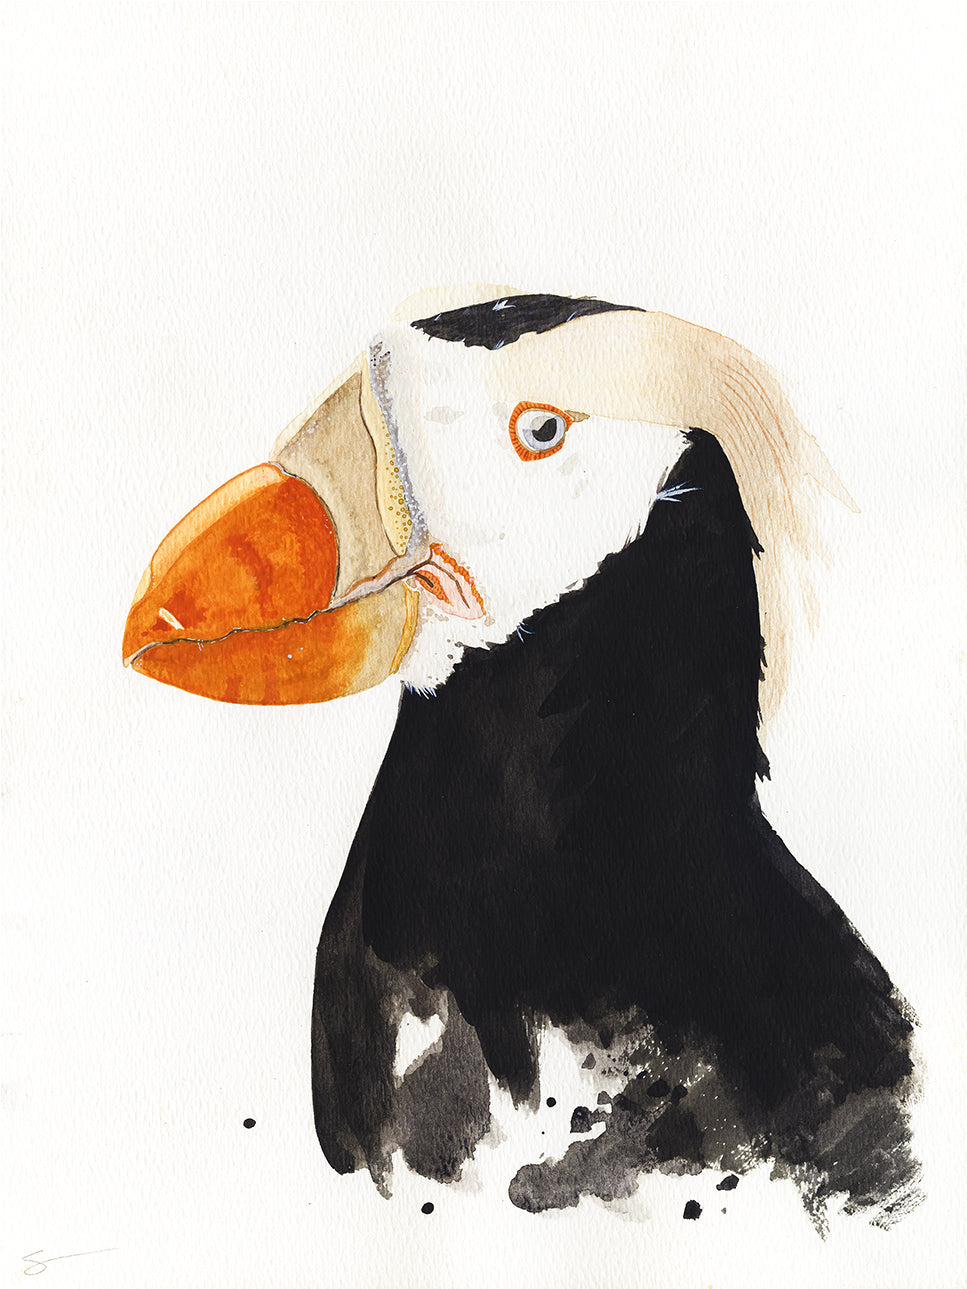 Tufted puffin watercolor painting